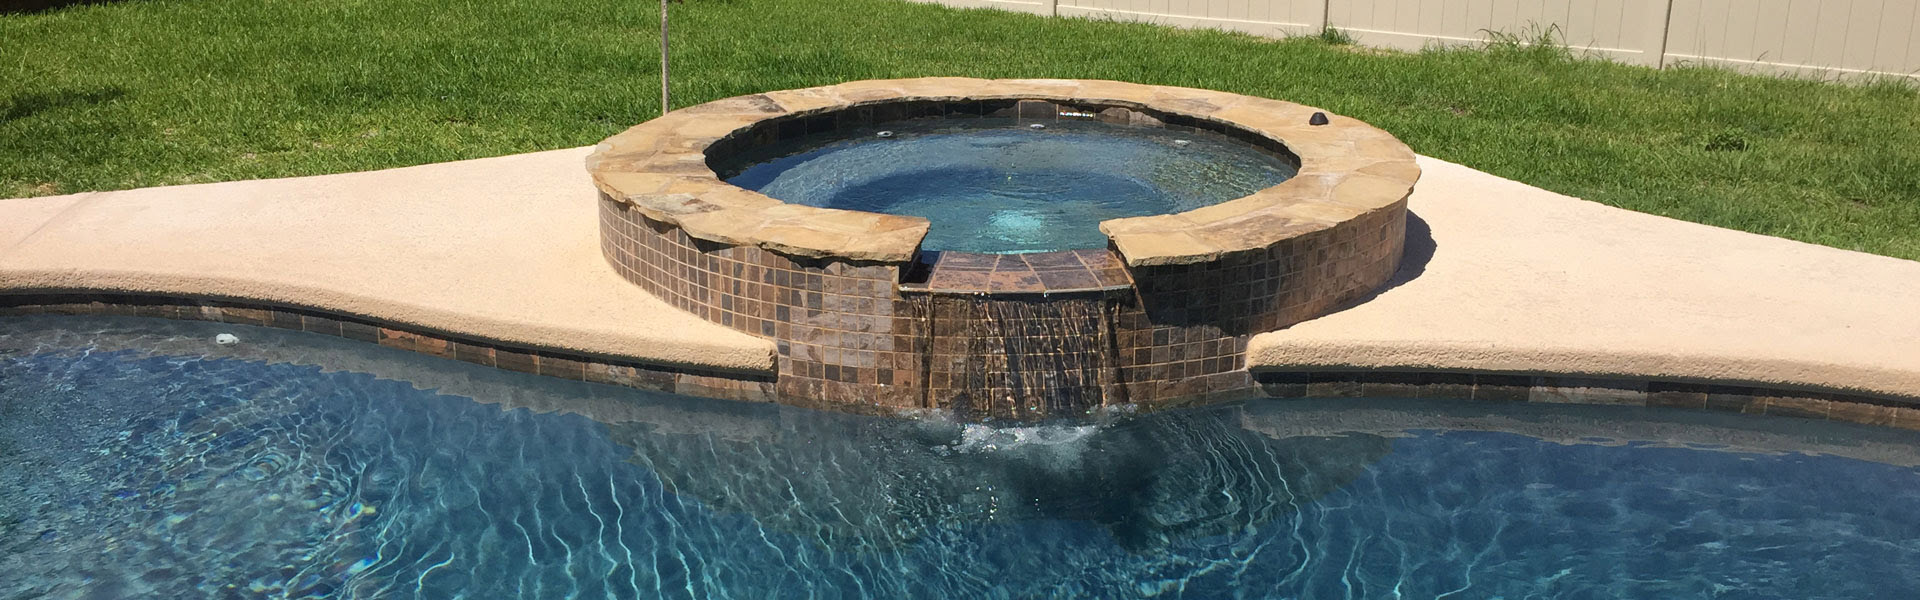 New Pool Construction Corpus Christi Service Repairs Pool